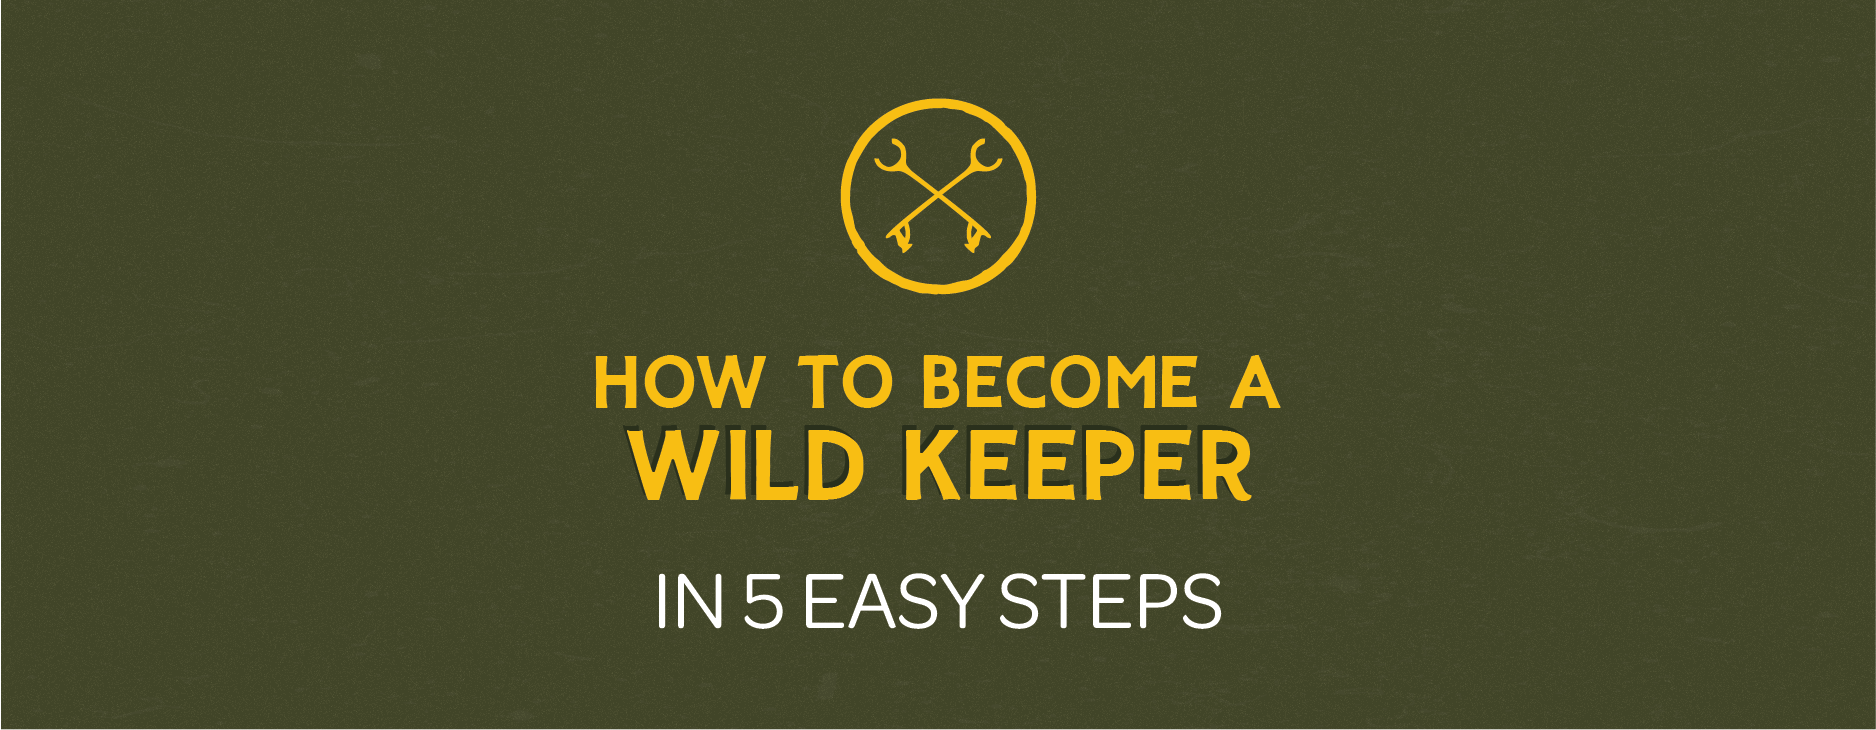 keep-nature-wild-wild-keepers-steps